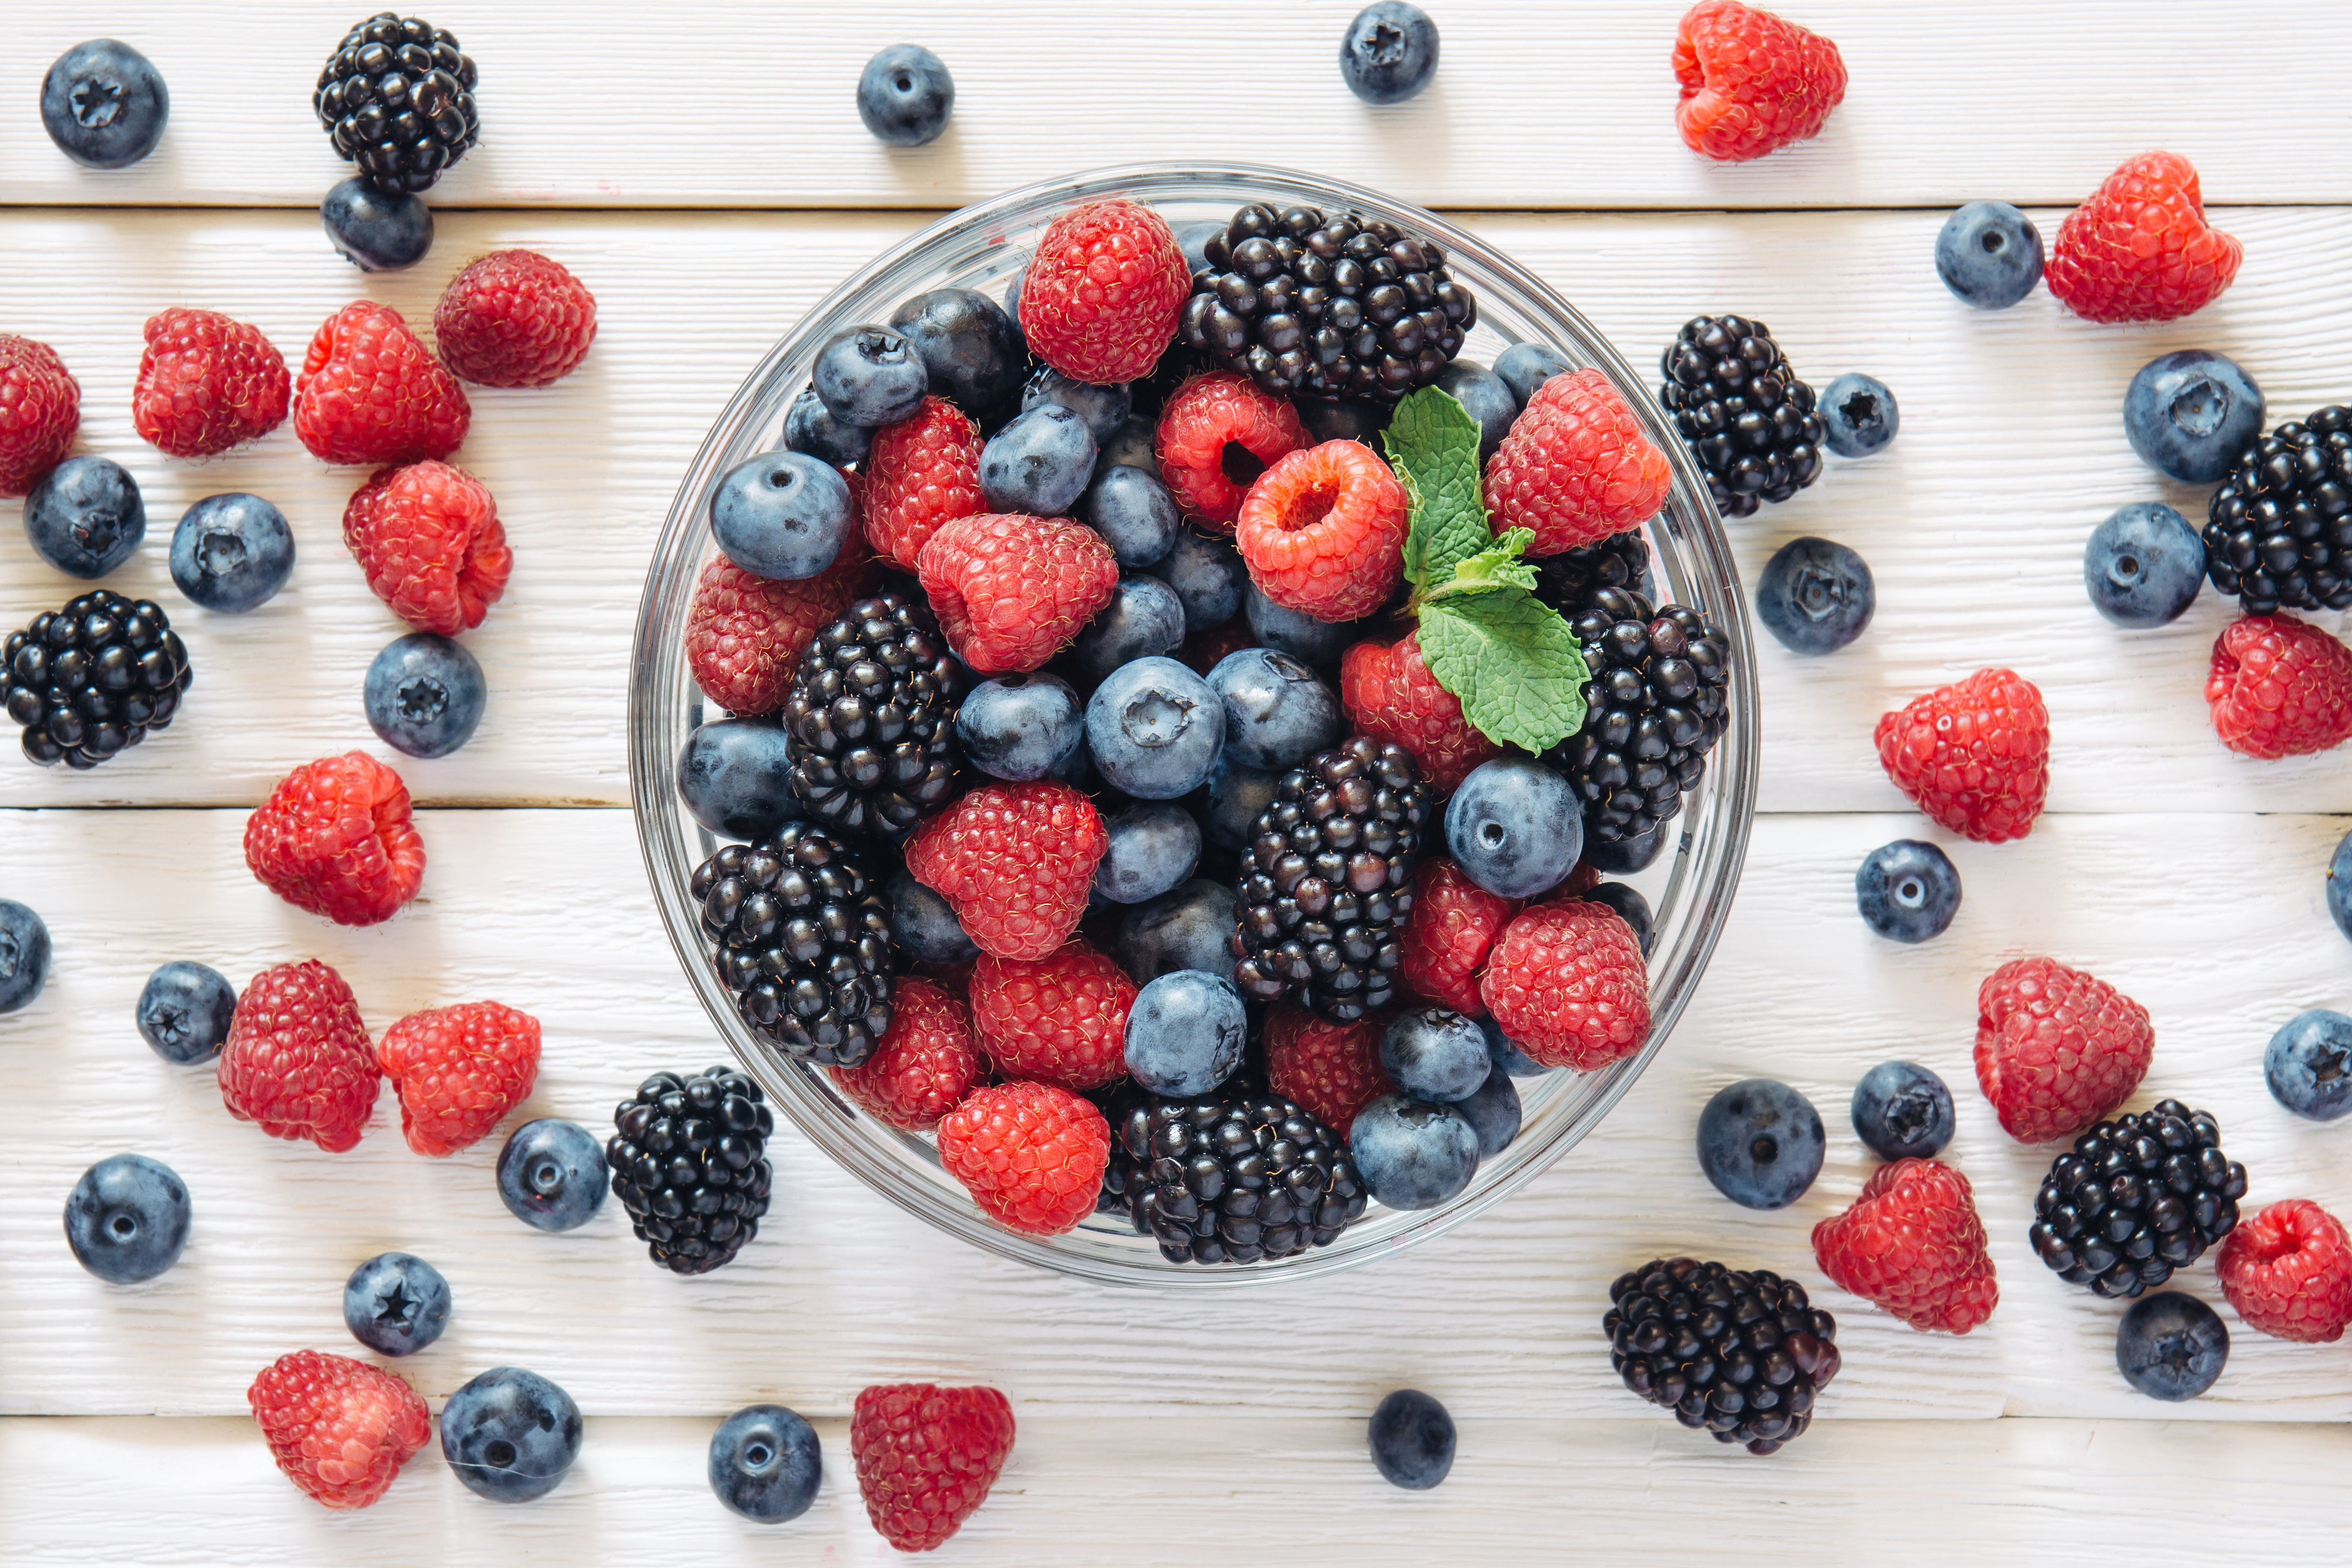 4 Brain-Enhancing Foods That Could Help Prevent Memory Loss